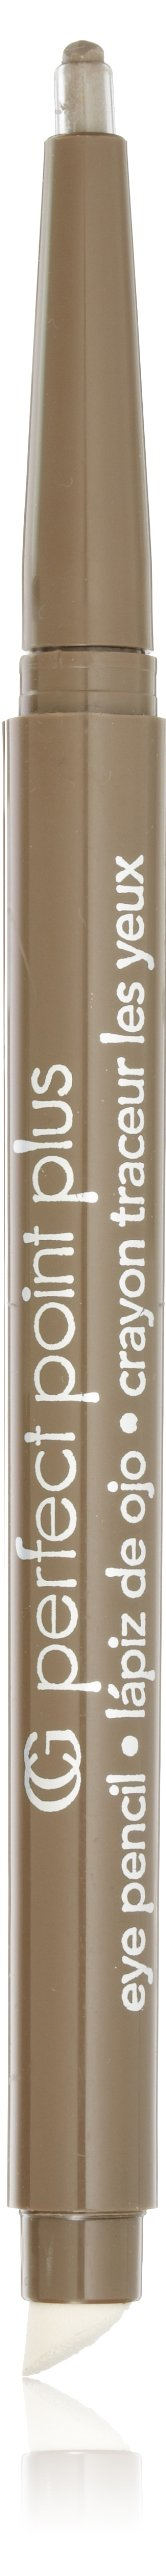 CoverGirl Perfect Point Plus Eyeliner, Grey Khaki (W) 215, 0.008 - Ounce Packages (Pack of 2)